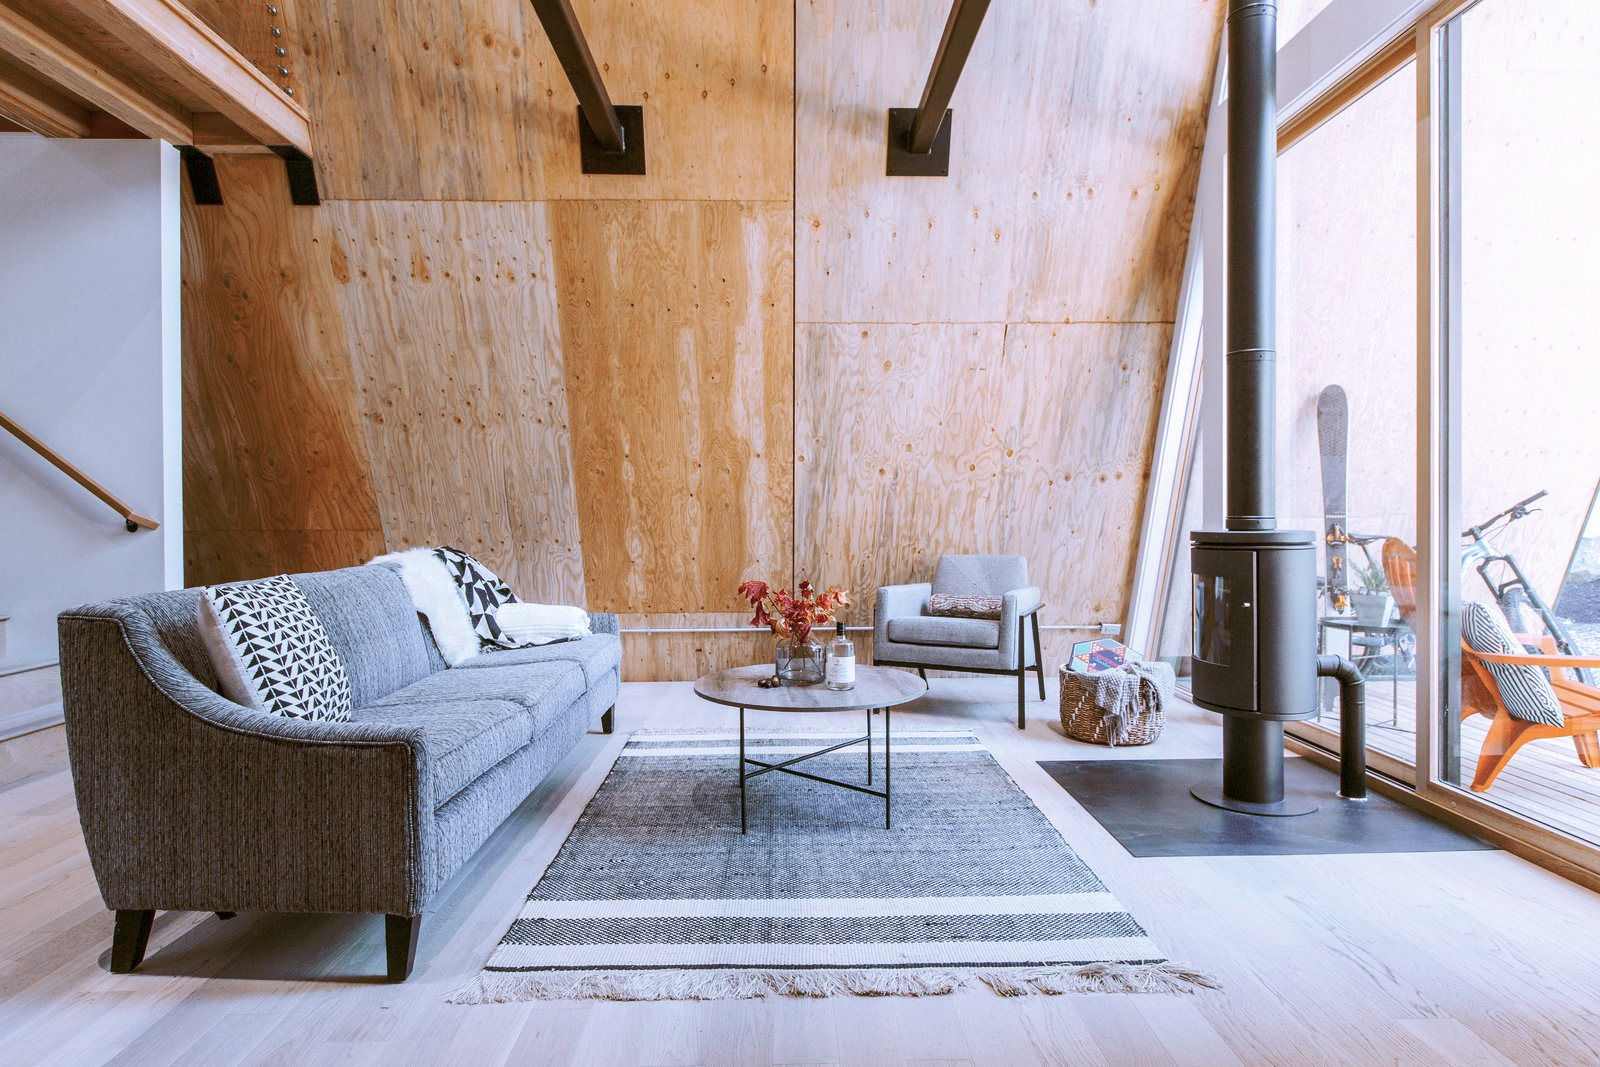 Ski Chalet Interior Design 5 ski chalets and mountain homes on the market right now